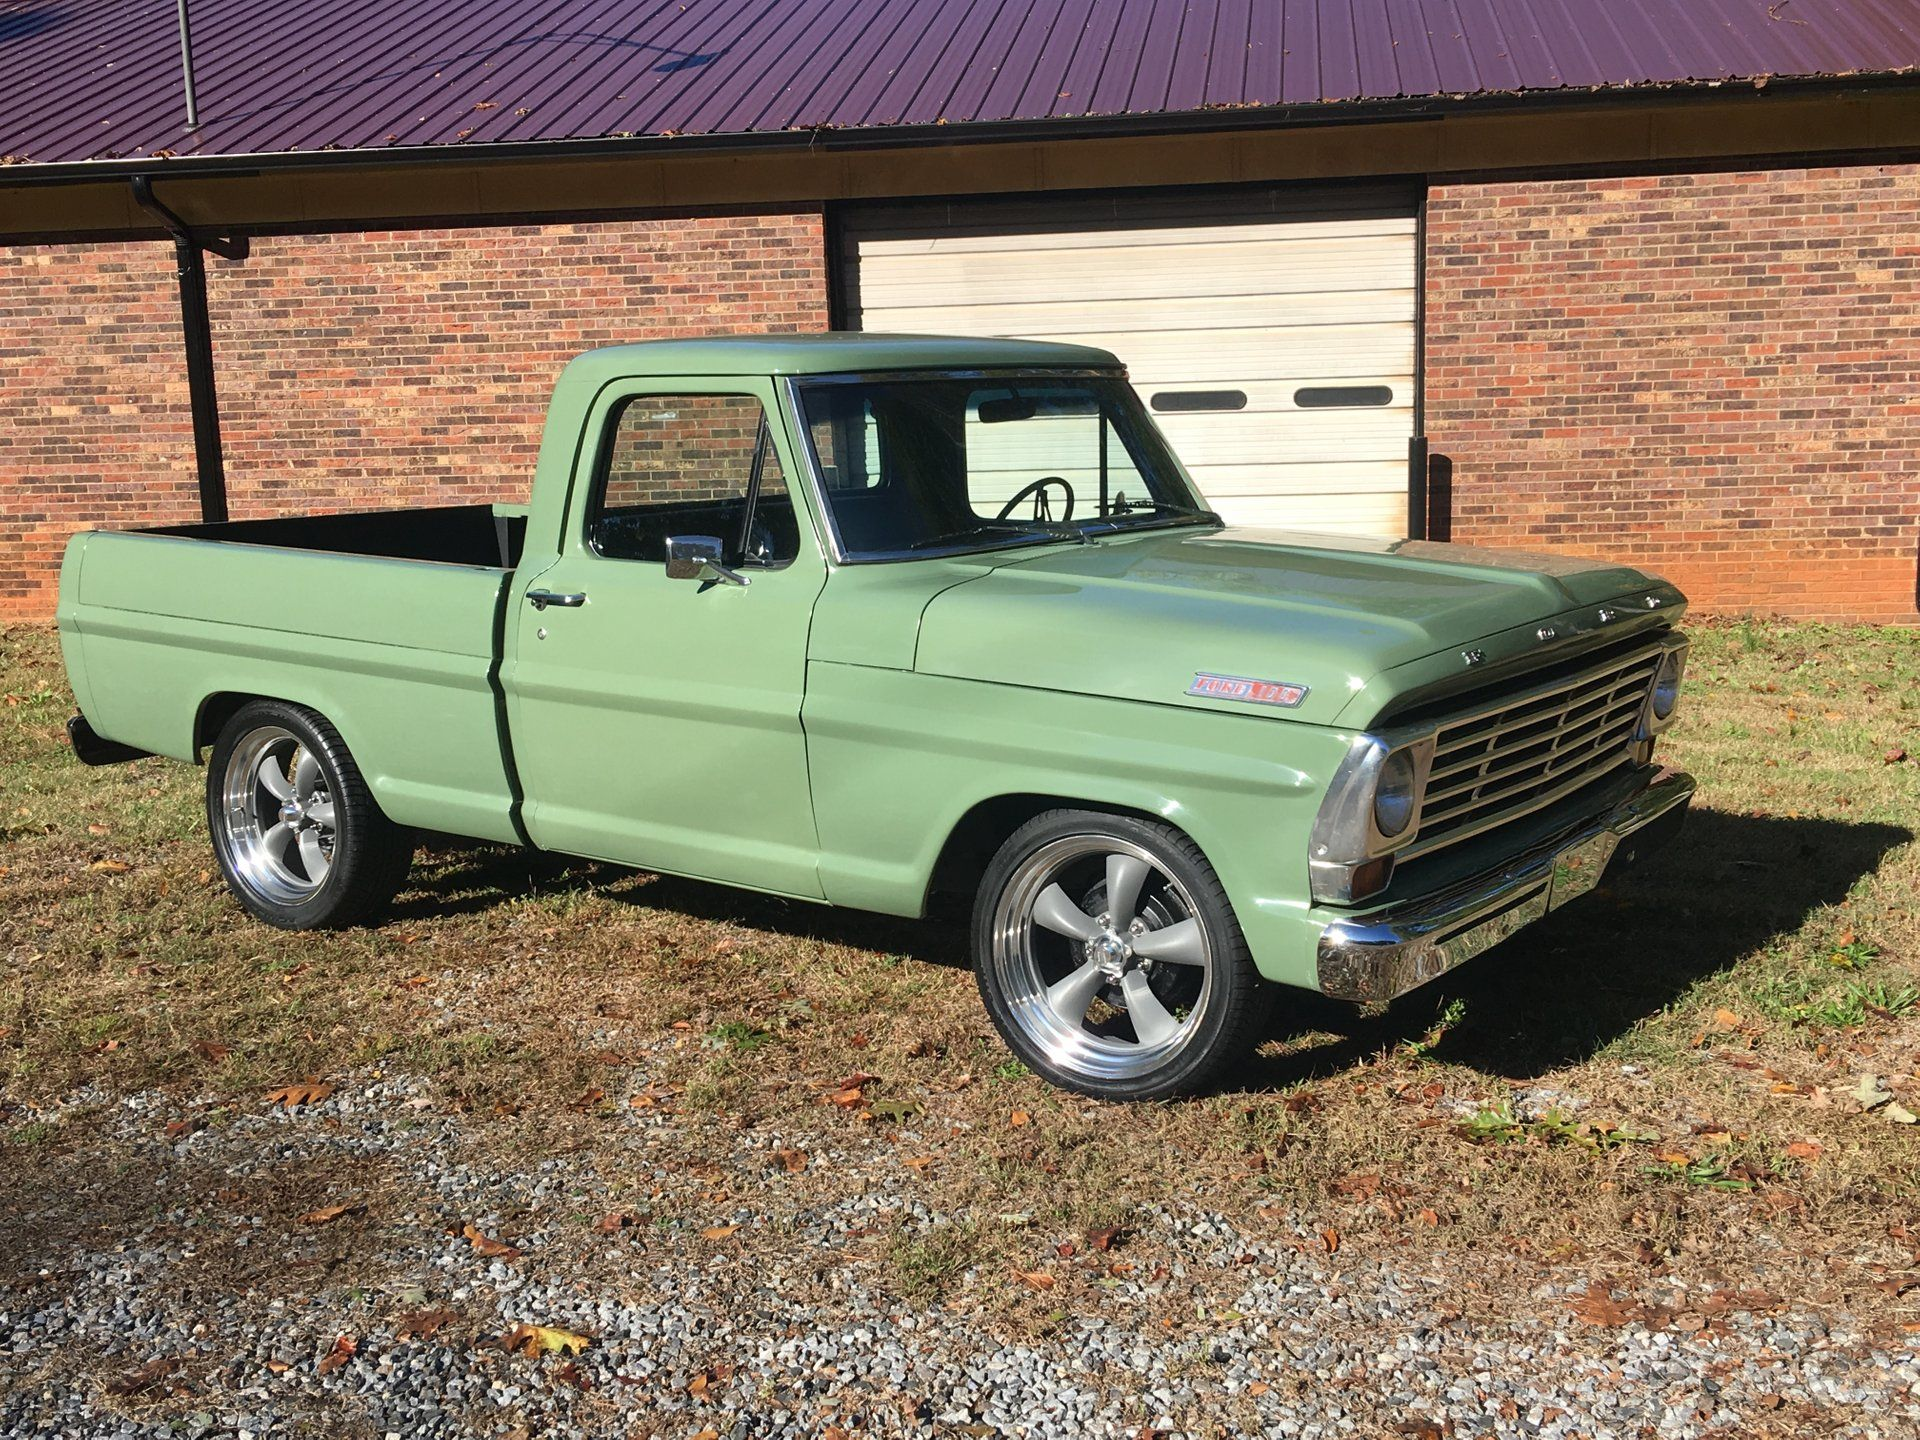 1967 Ford F100 Small Pickup Trucks Built Ford Tough Ford Trucks